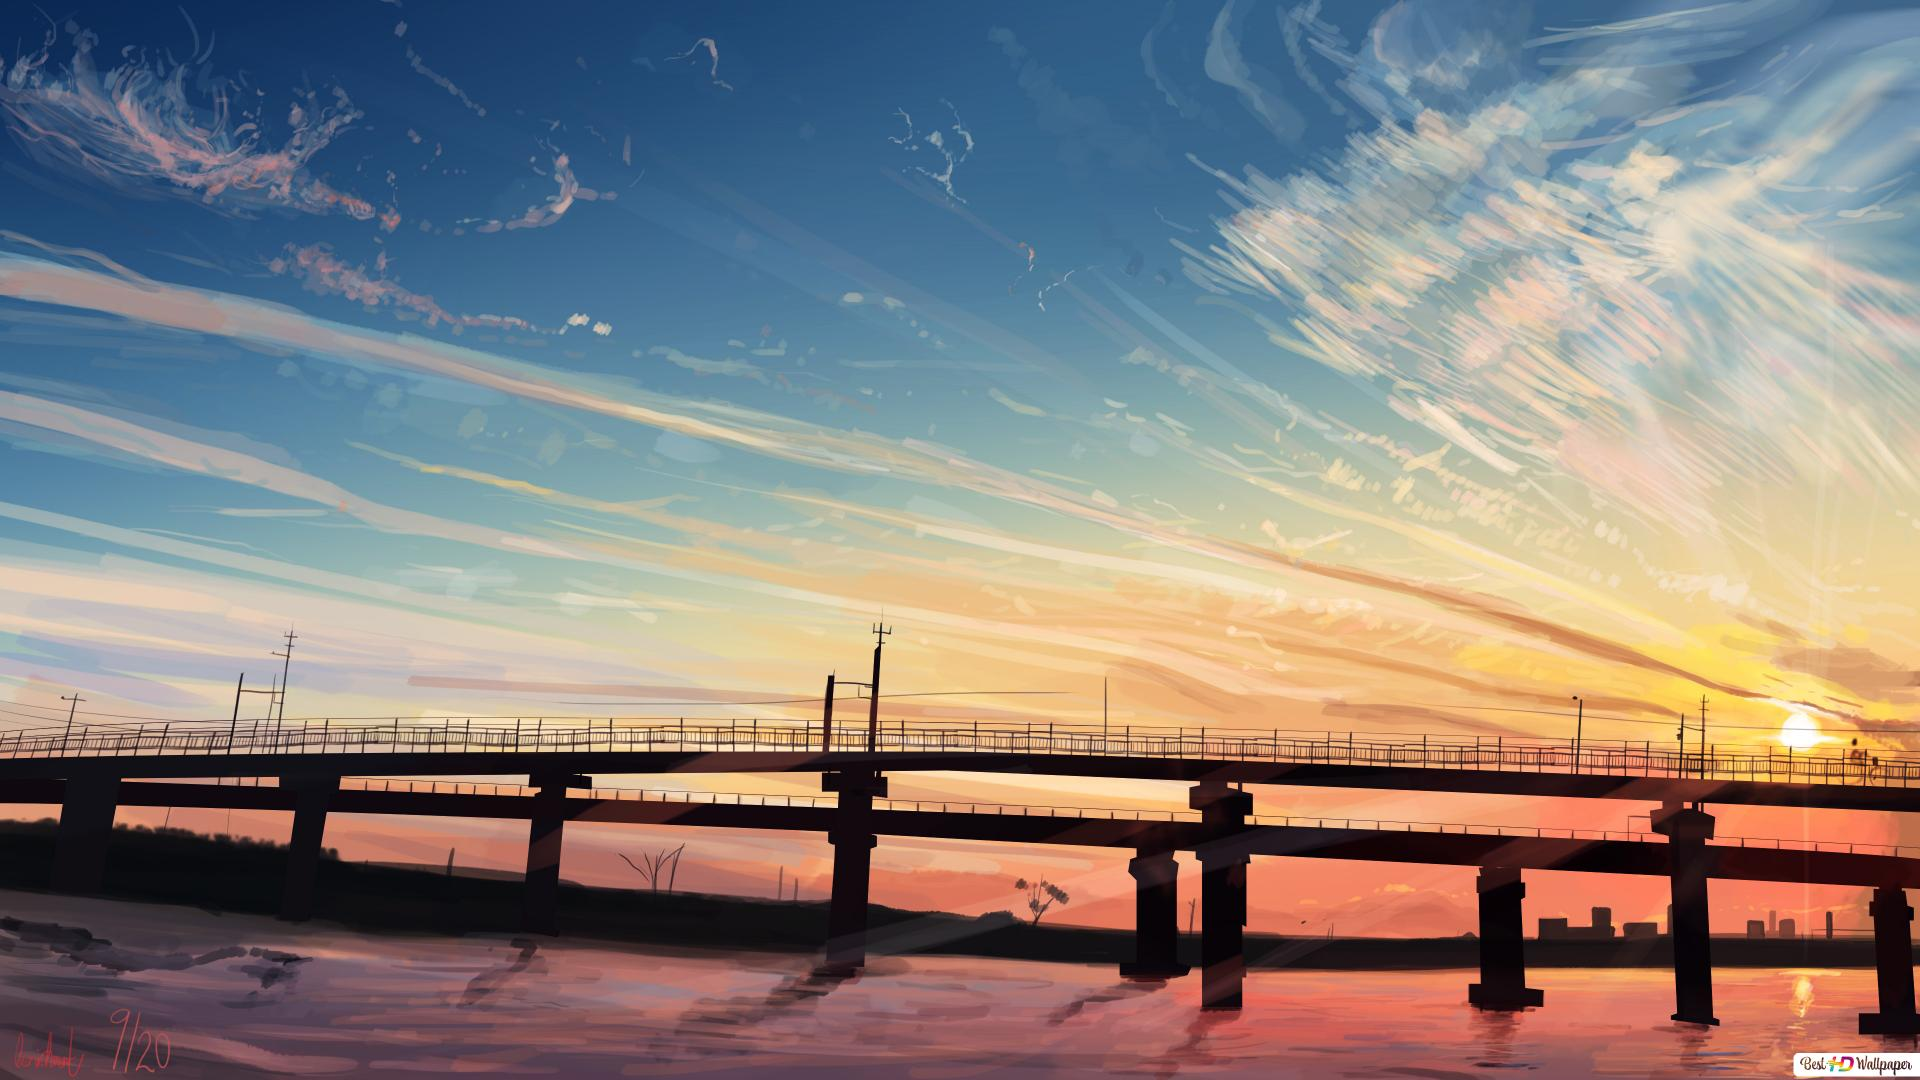 Anime Landscape Hd Wallpaper Download